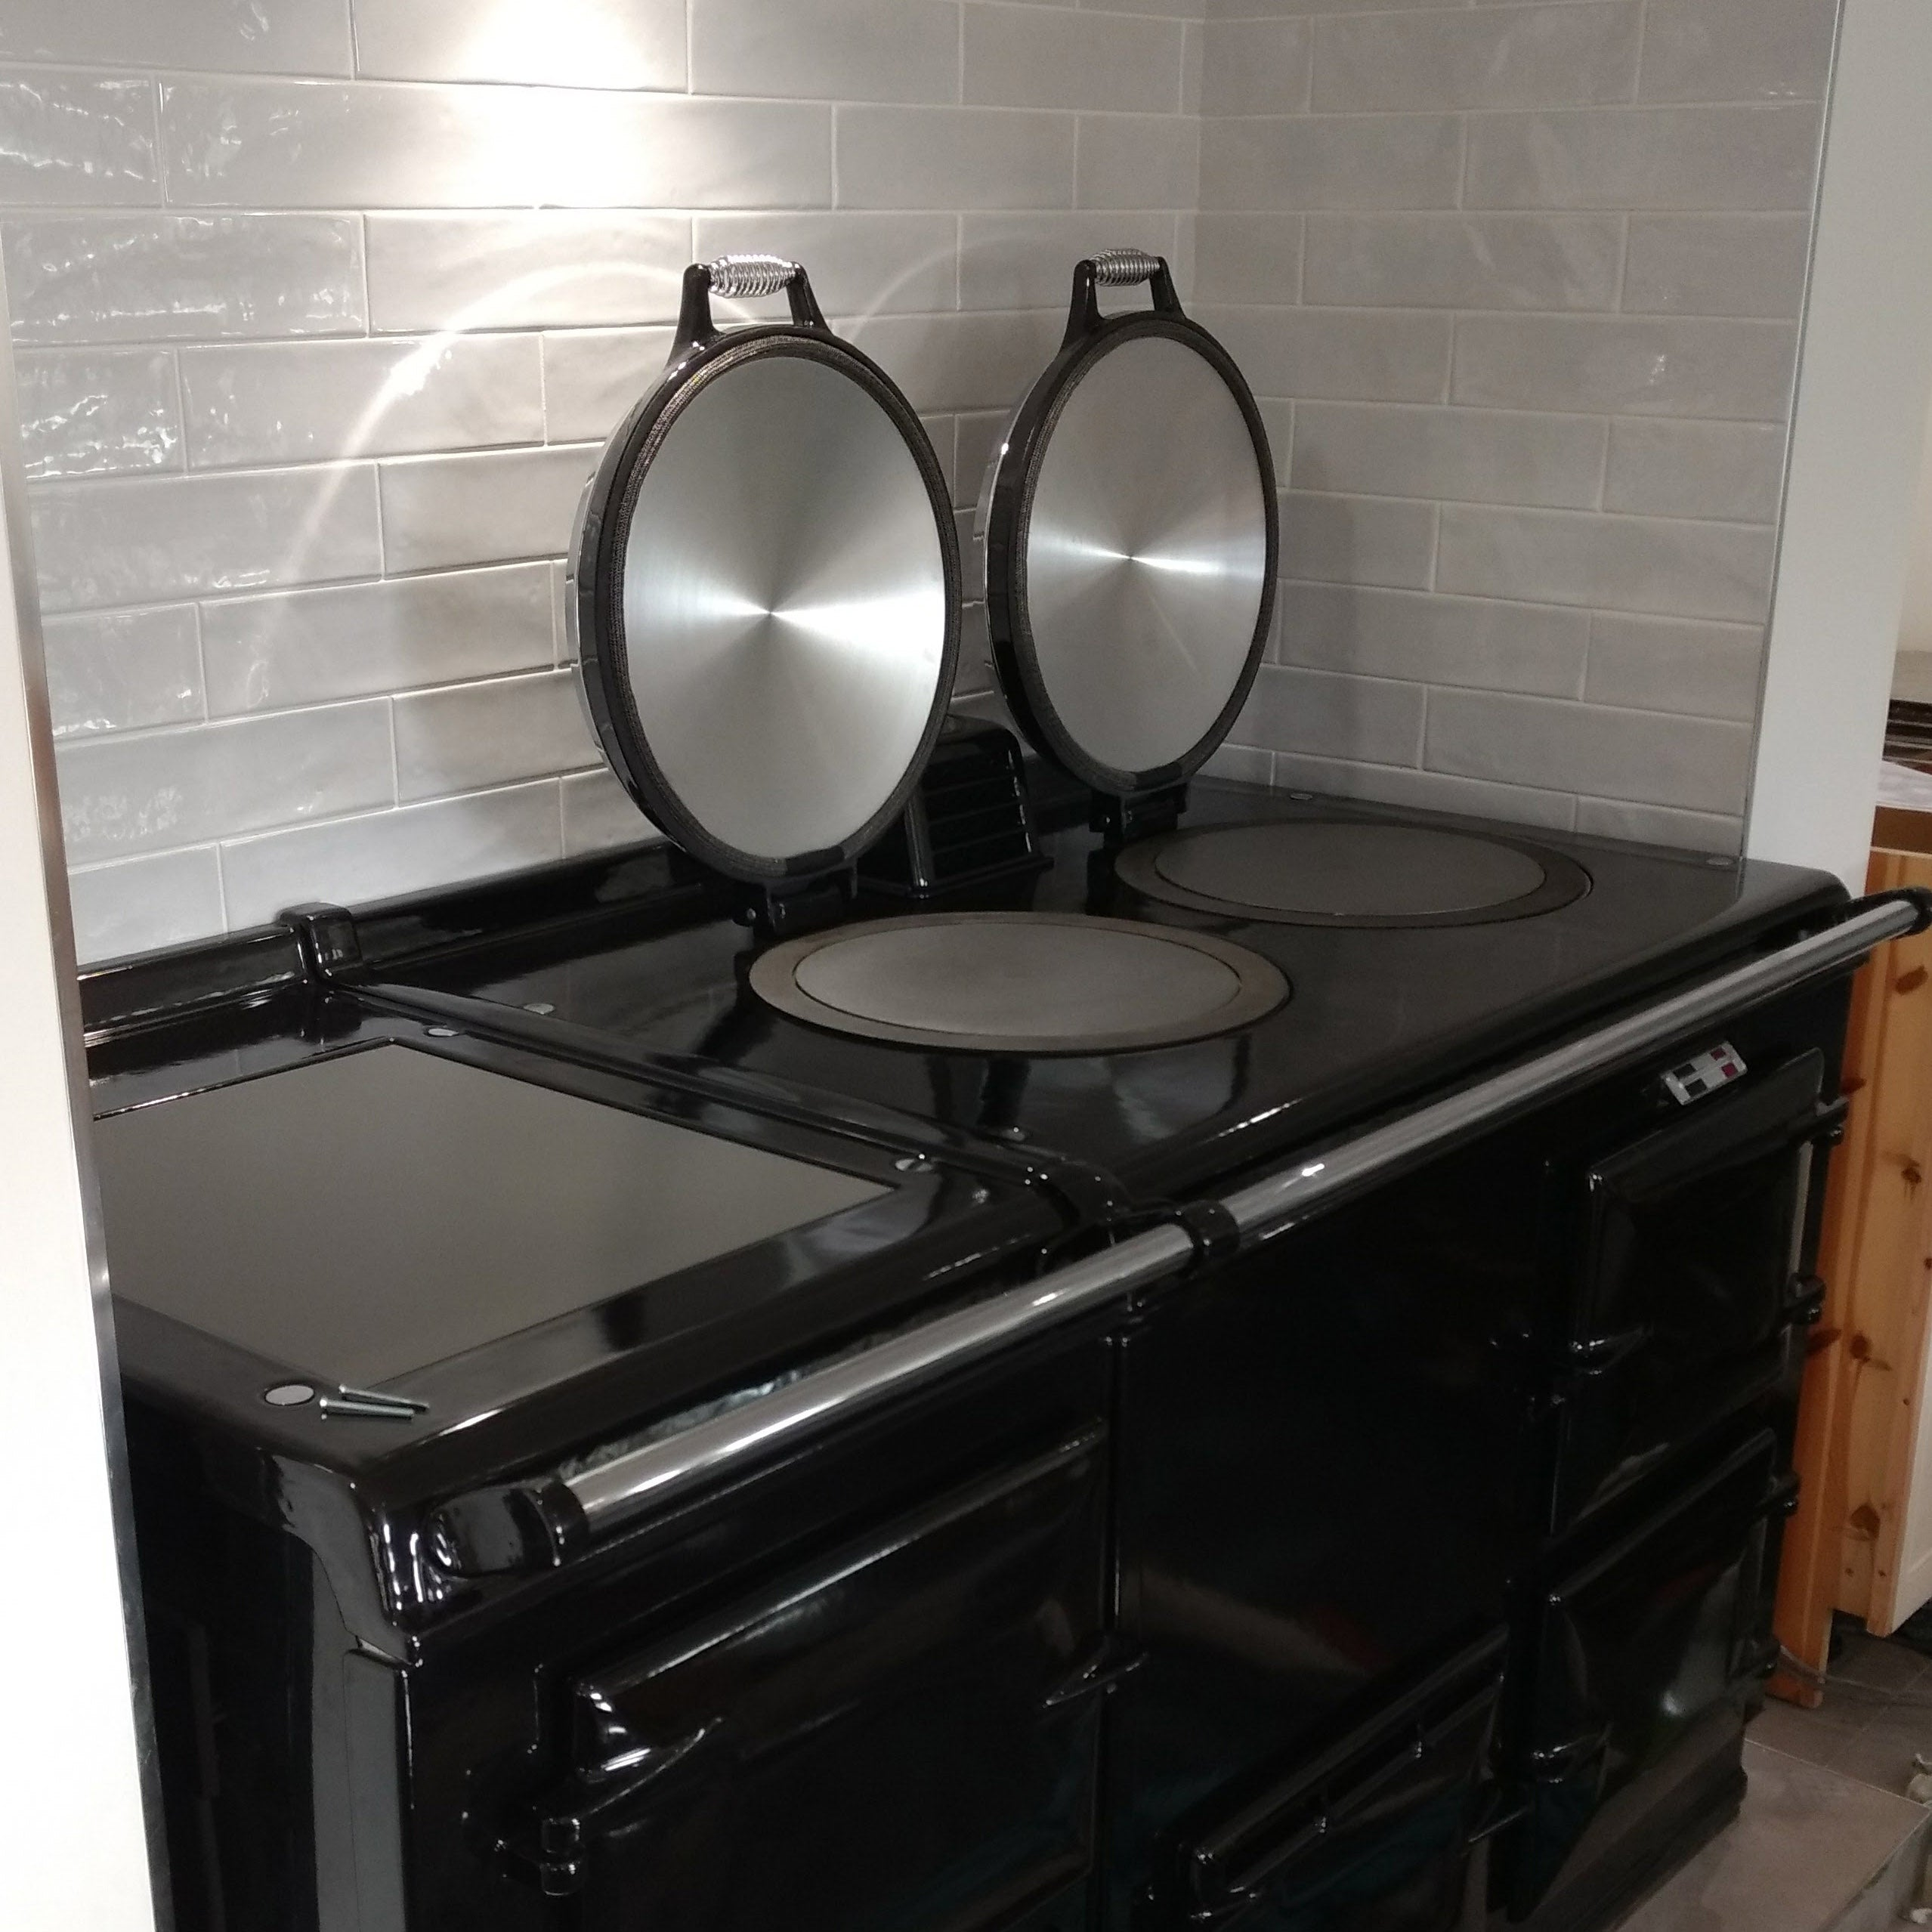 Reconditioned Aga range cooker